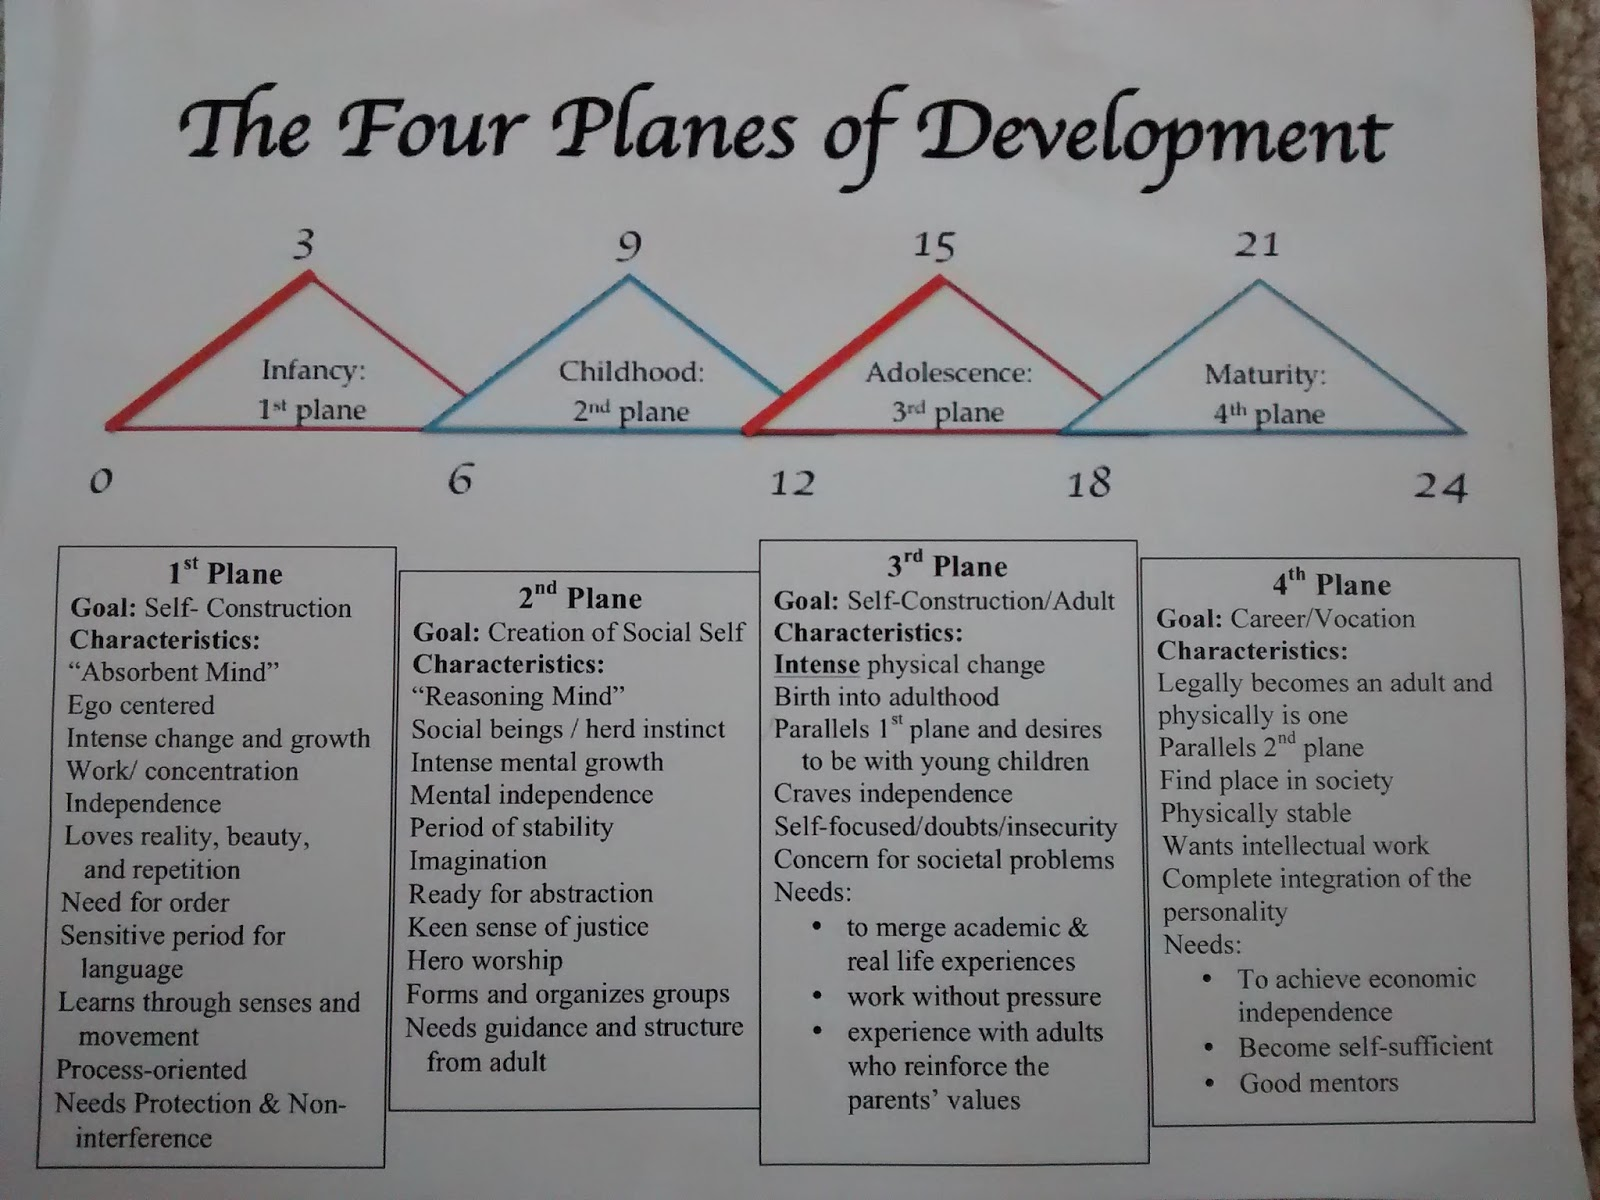 Planes of development